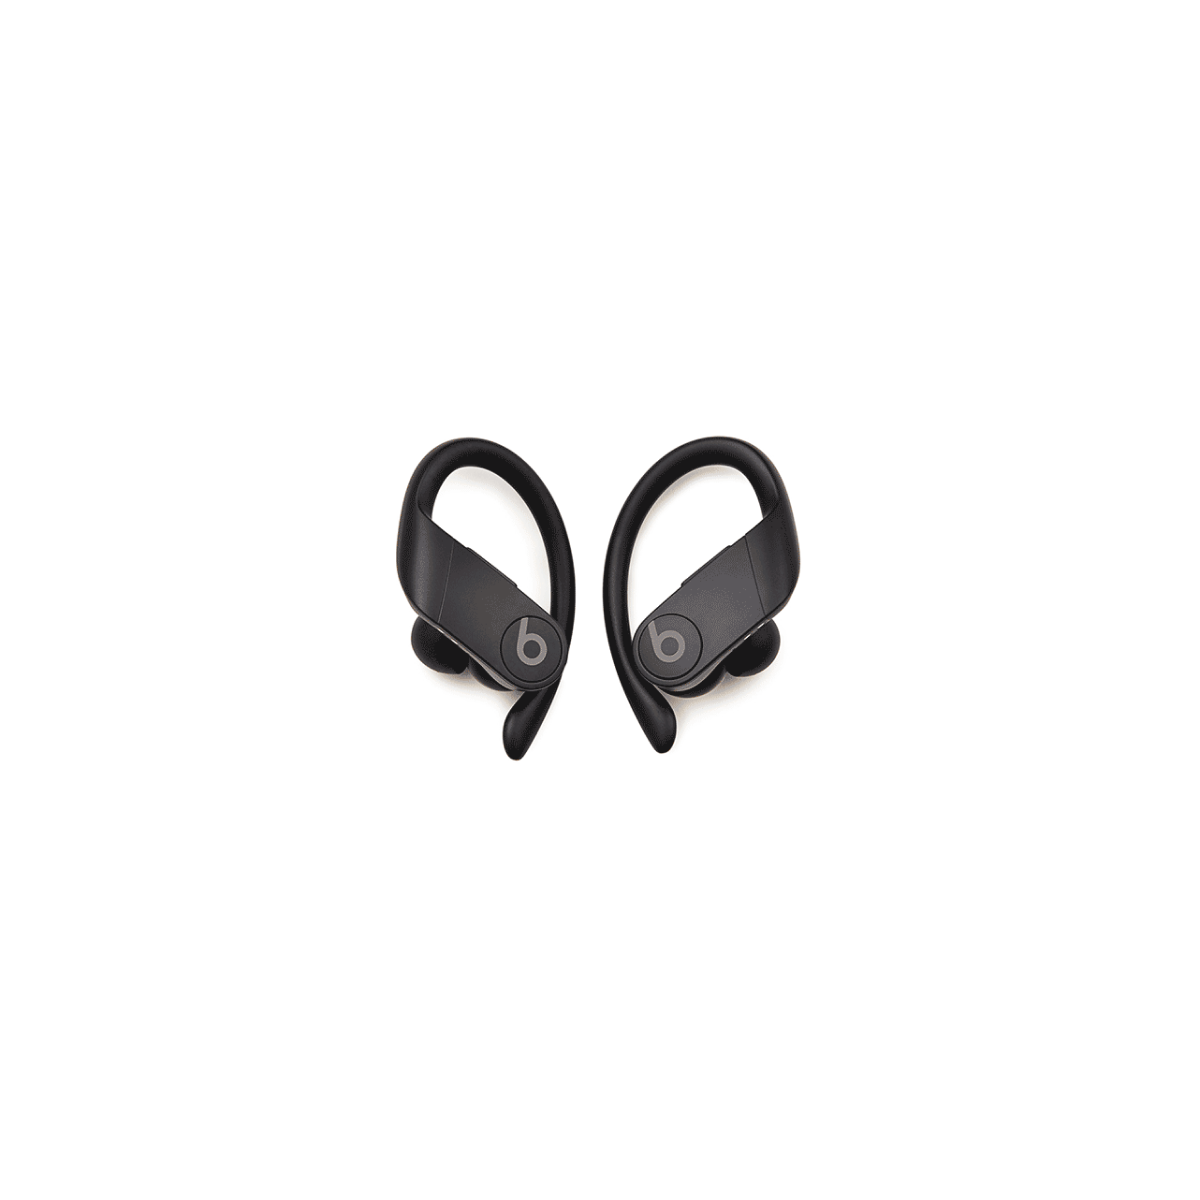 Beats by Dre Powerbeats Pro Totally Wireless Earphones